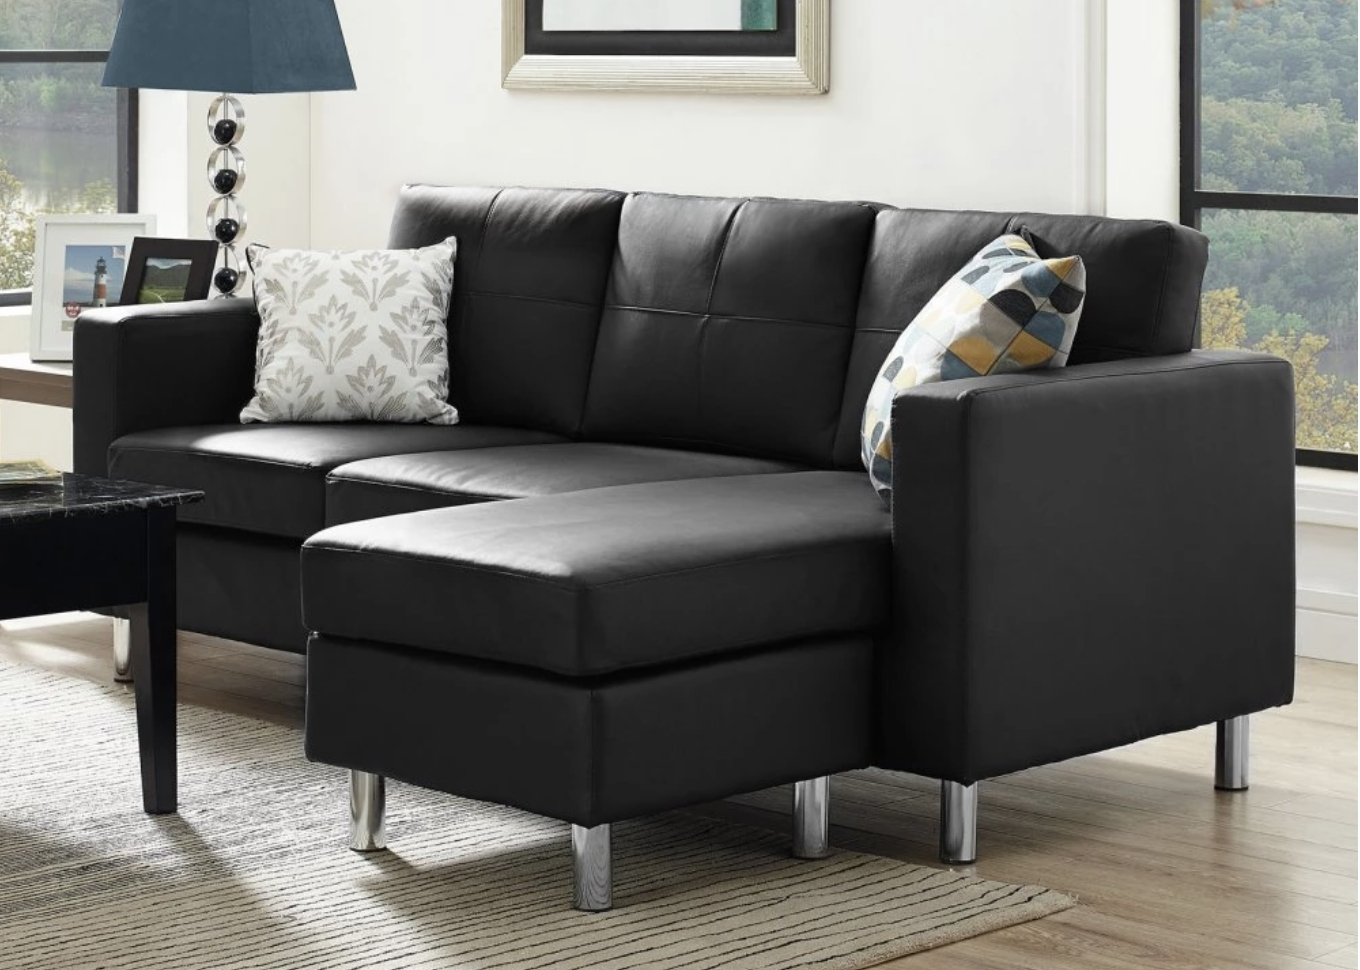 Famous 75 Modern Sectional Sofas For Small Spaces (2018) For Sectional Sofas In Small Spaces (View 2 of 20)